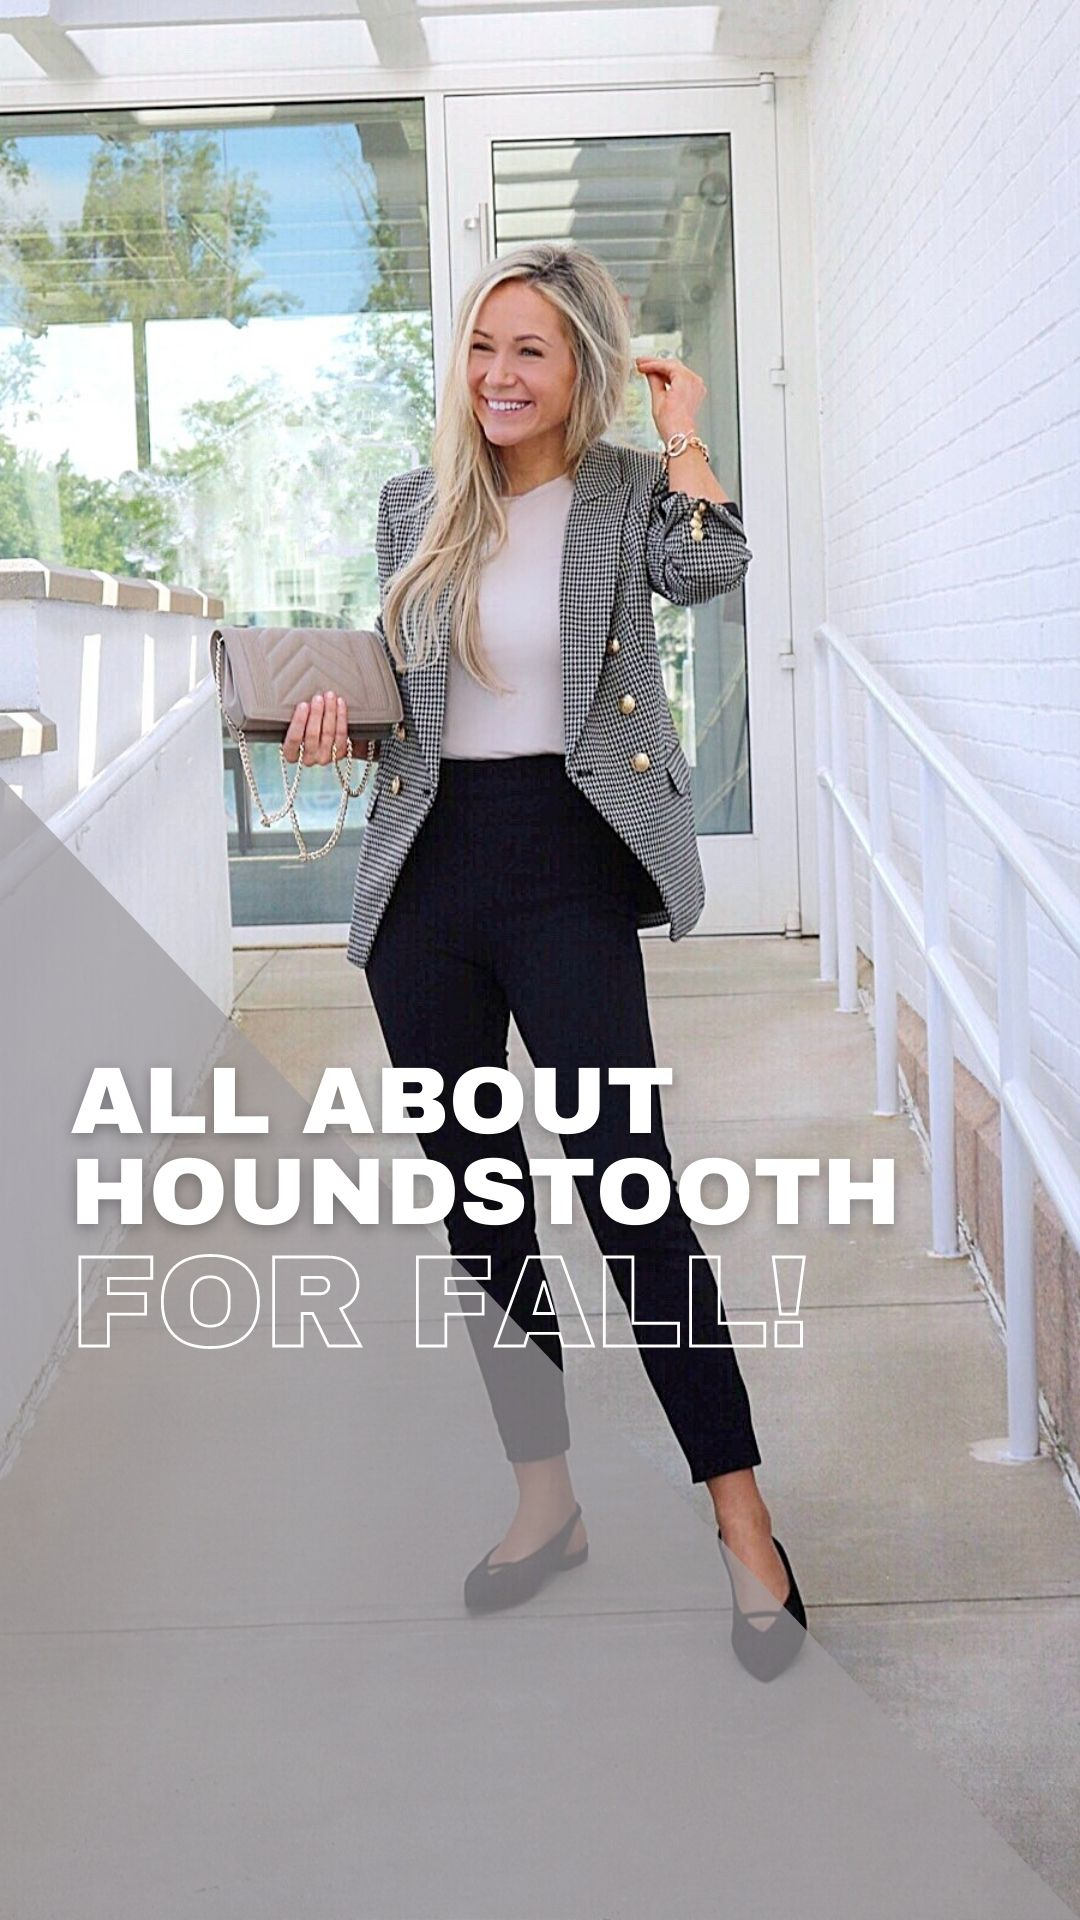 All About Houndstooth for Fall!